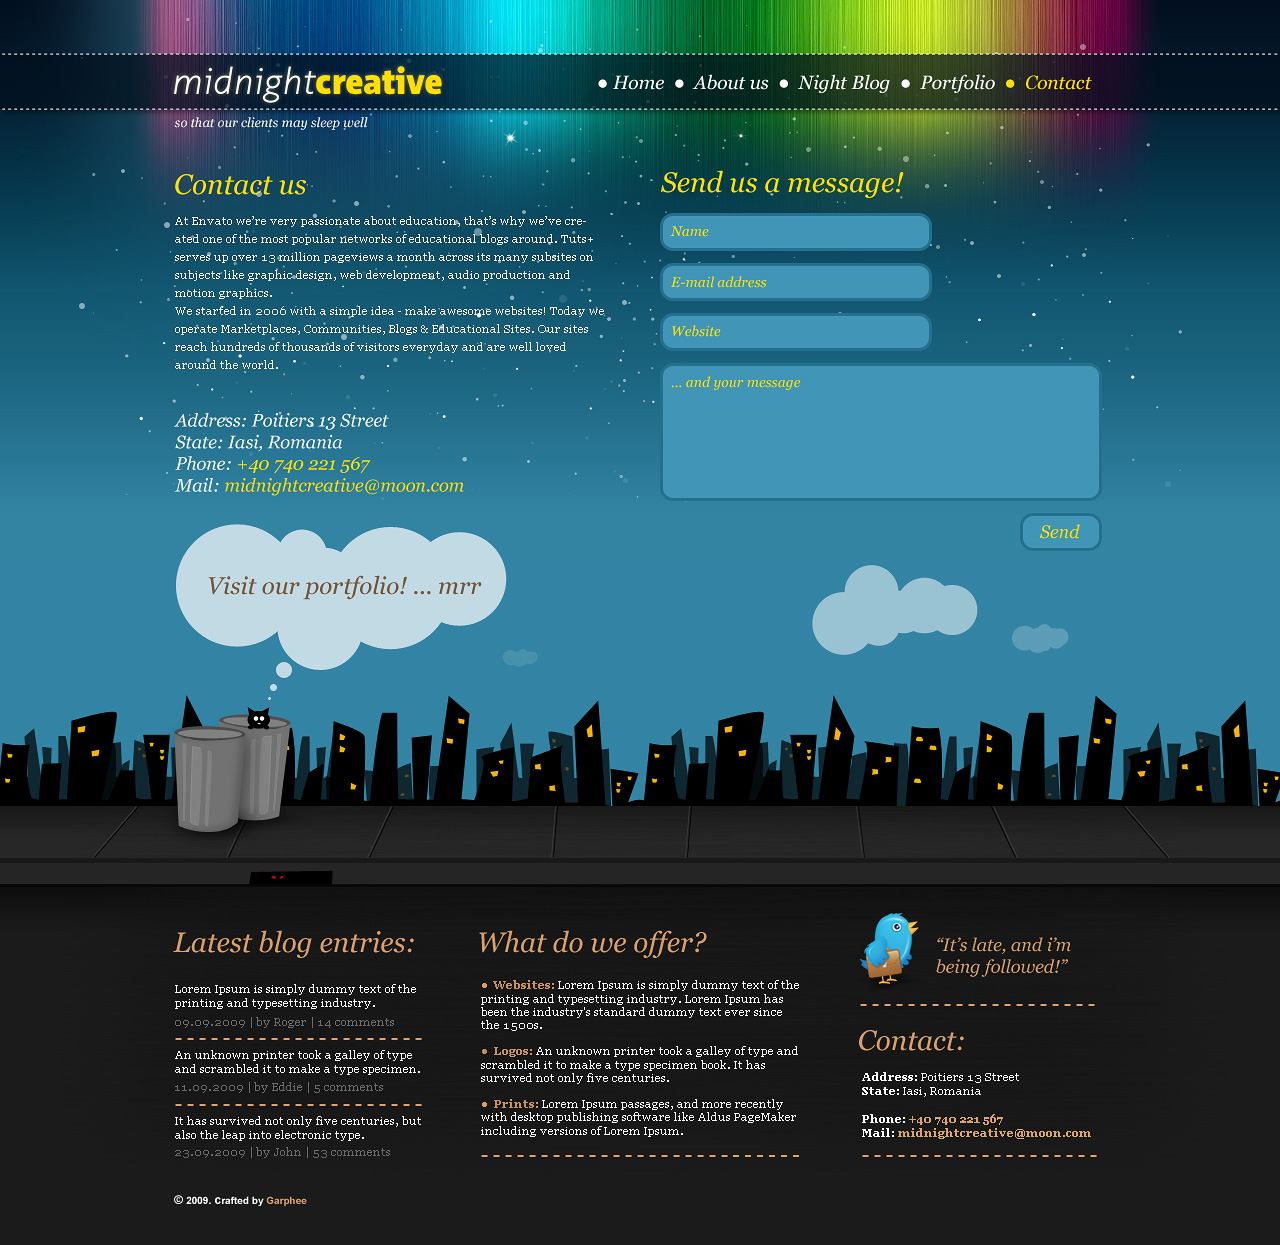 Midnight Creative - portfolio template.